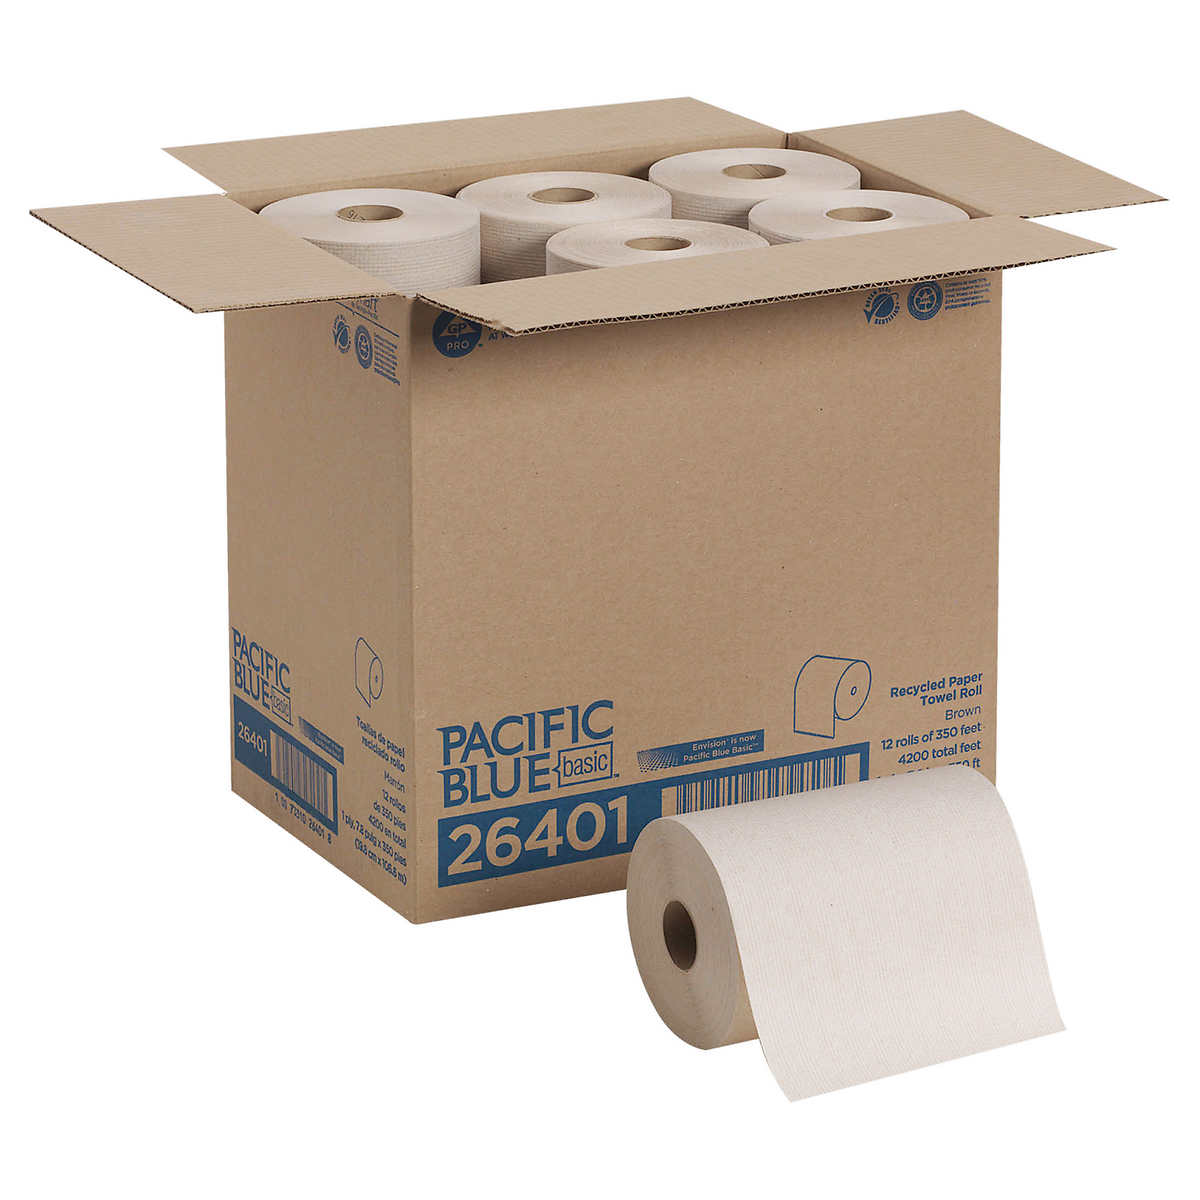 georgia pacific envision paper towel rolls 1 ply brown 12ct